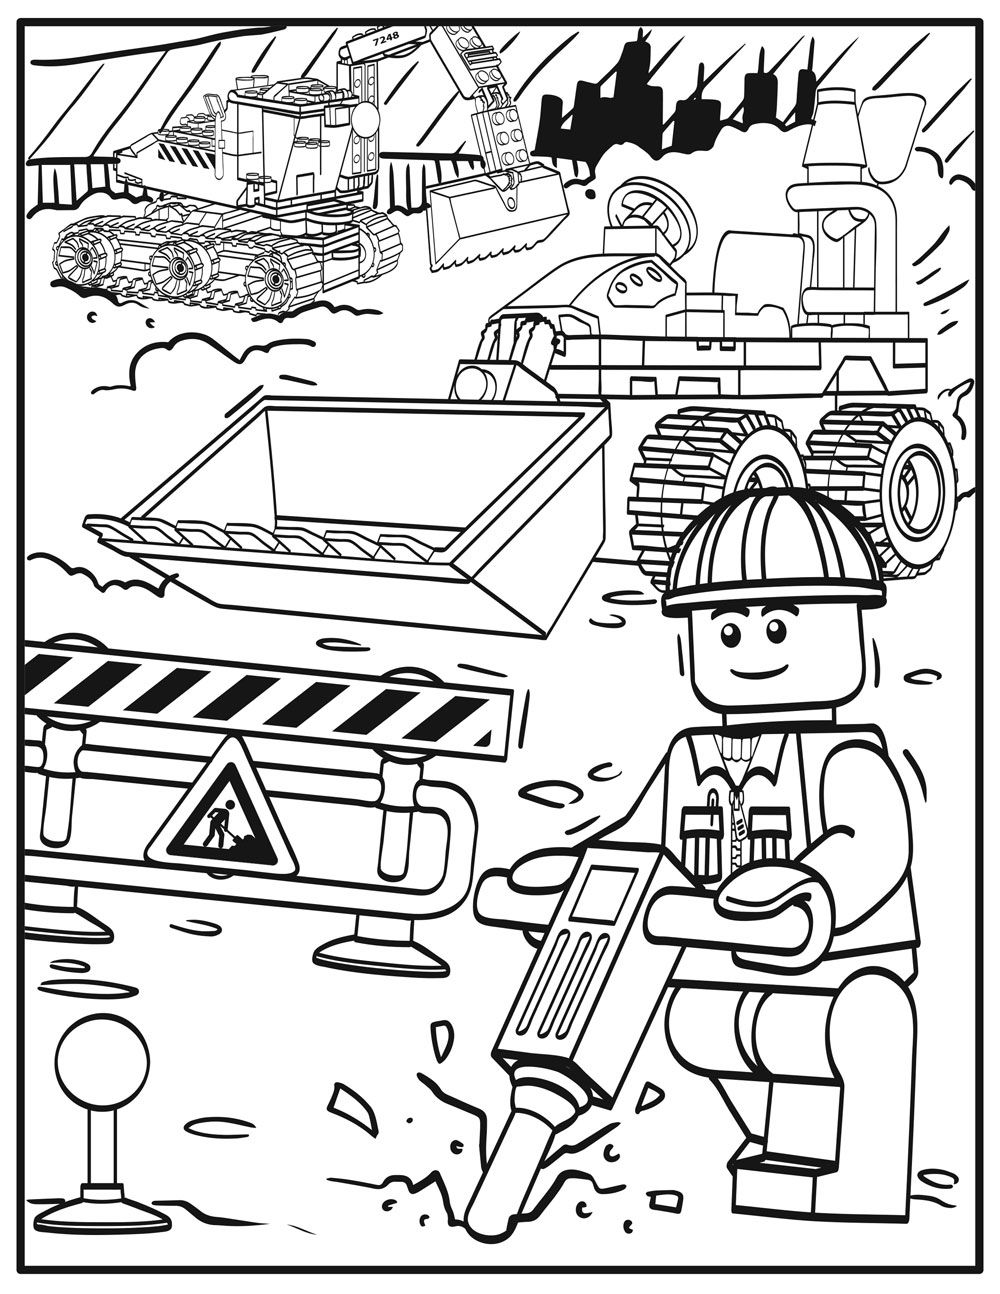 Lego Inspired Printable Coloring Pages Lego Coloring Pages Lego Coloring Coloring Pages